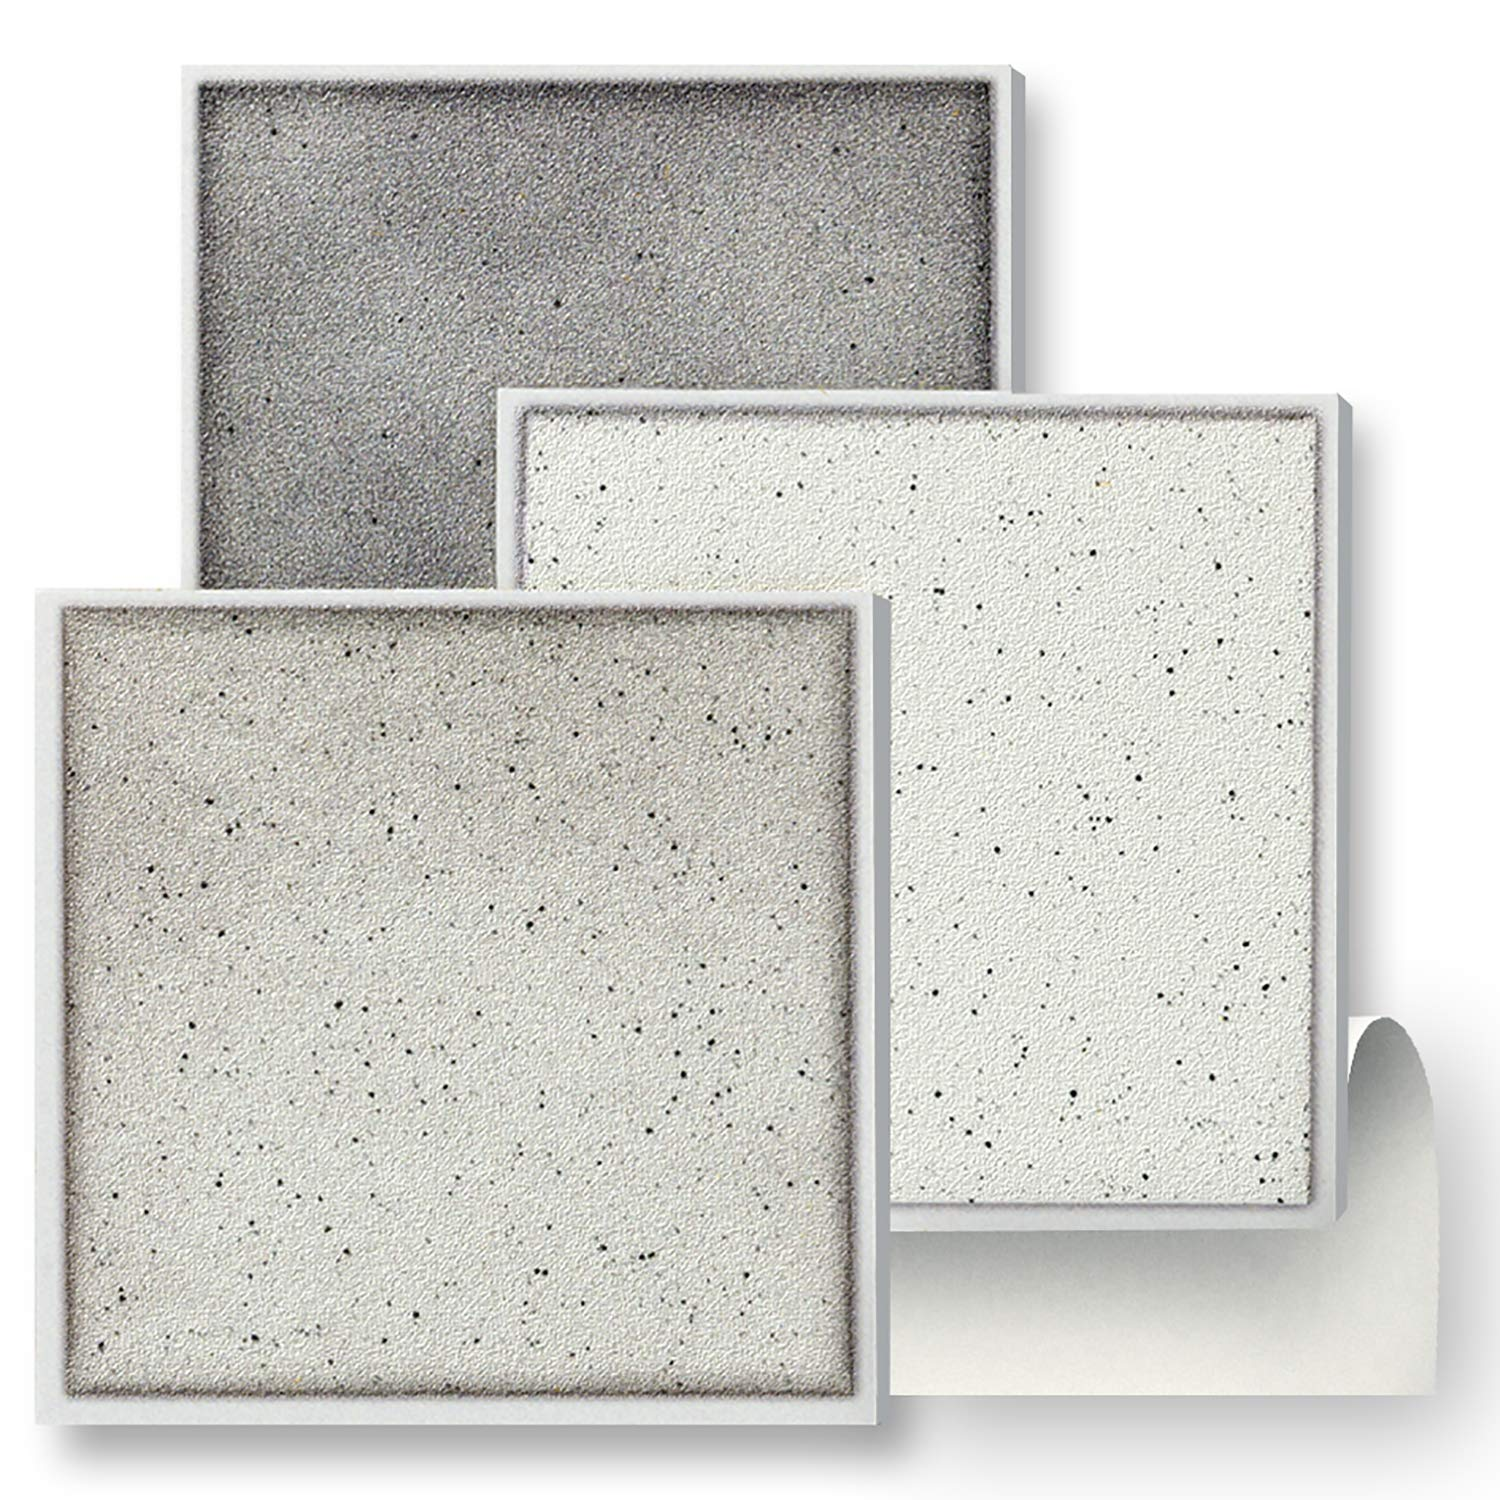 18 SELF ADHESIVE TILES: GREY SPECKLE MIX WALL TILES - 4